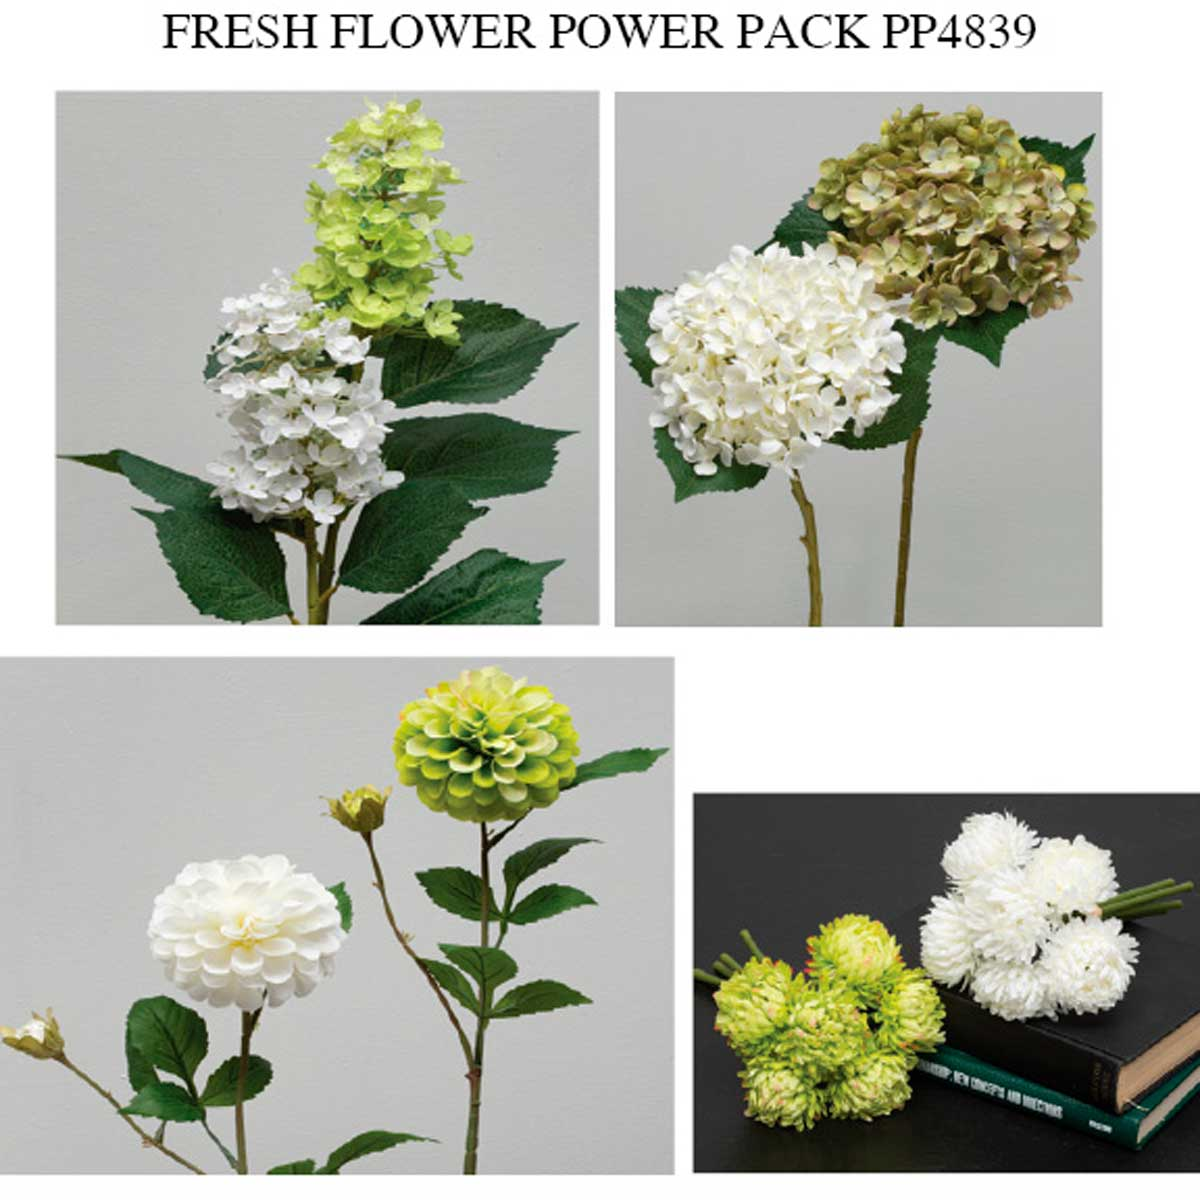 ENDLESS FRESH FLOWER POWER PACK 24 UNITS